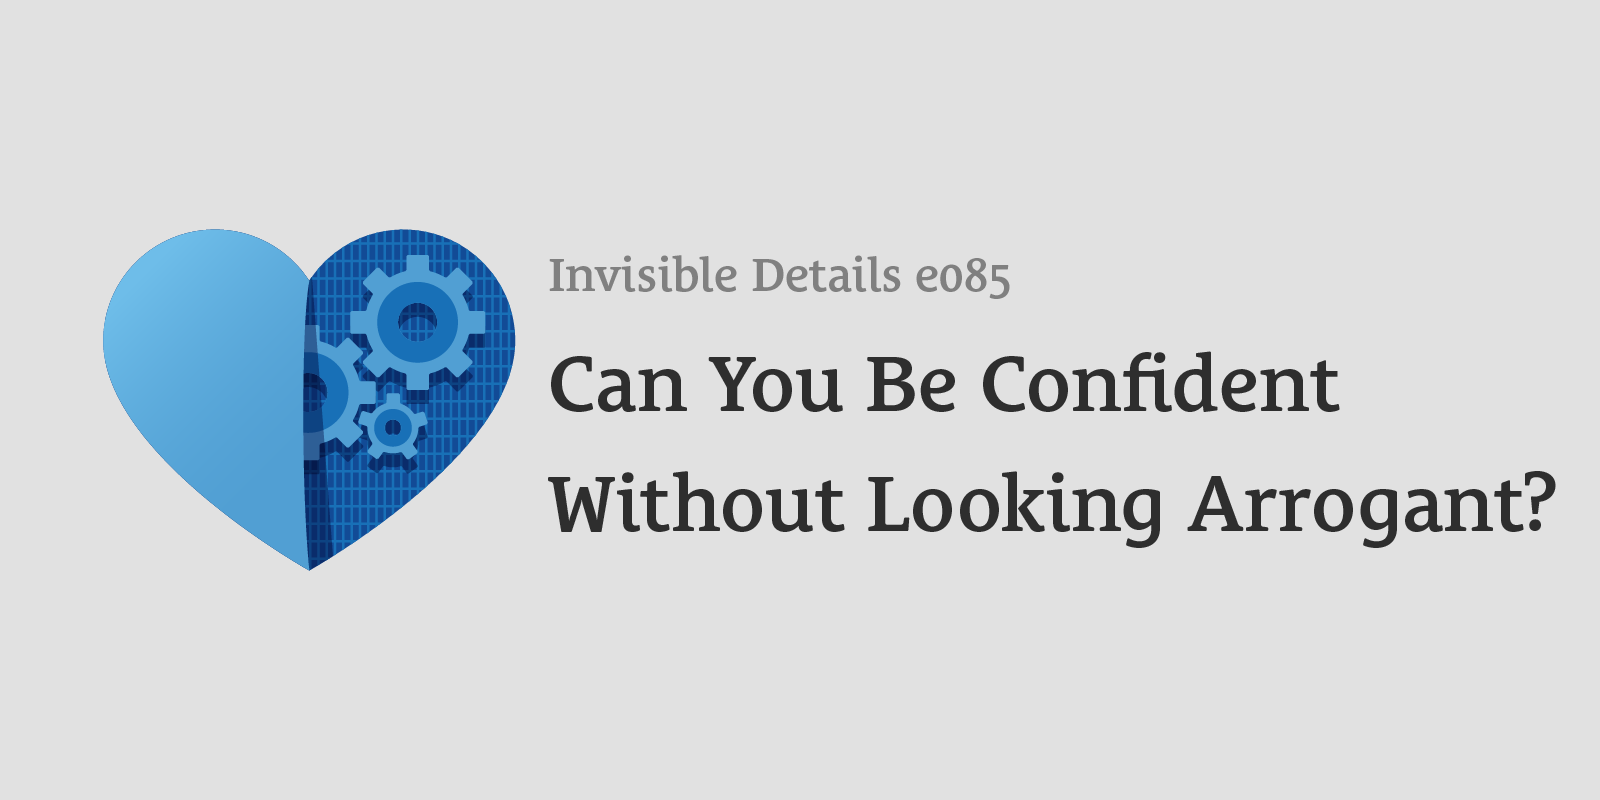 Can You Be Confident Without Looking Arrogant?